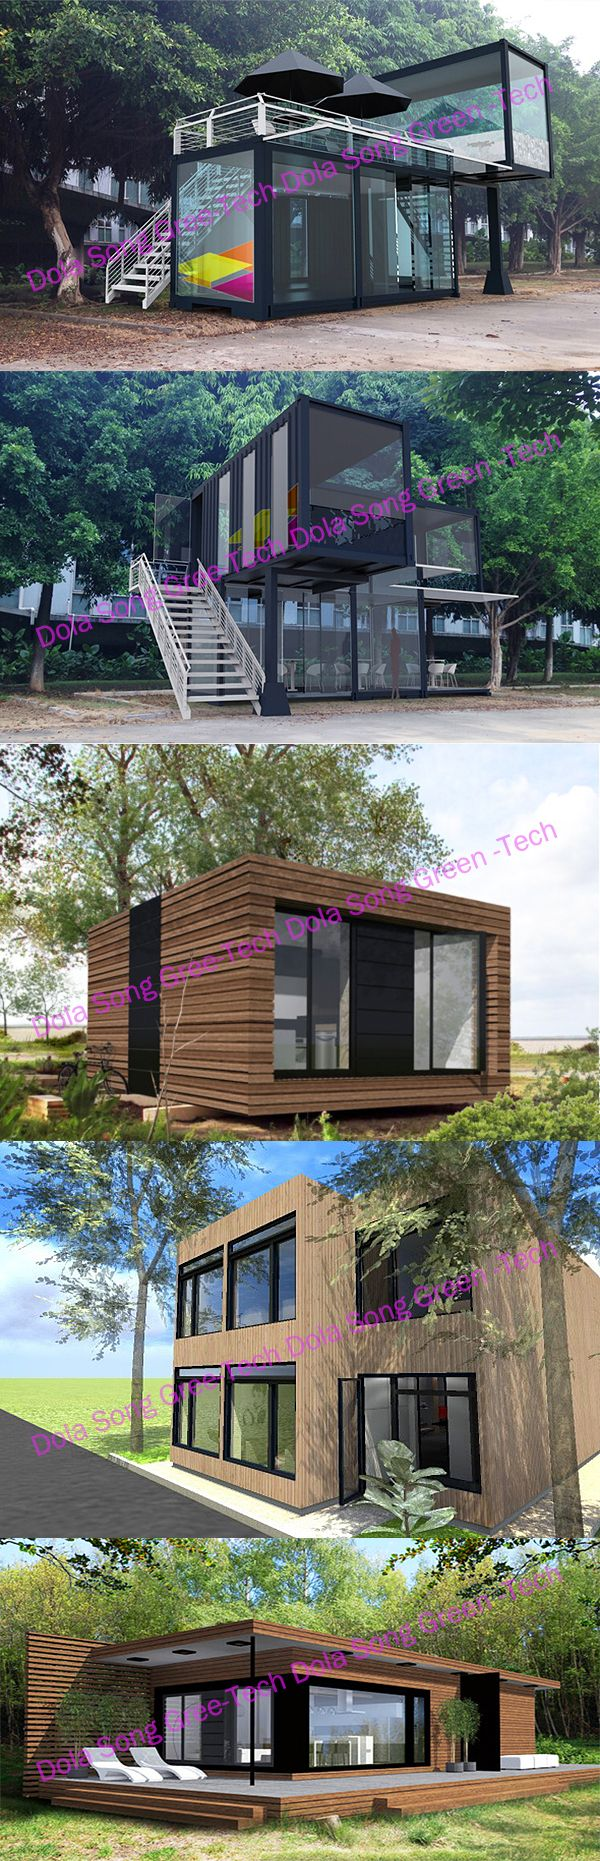 Modular flat packed cargo container size houses